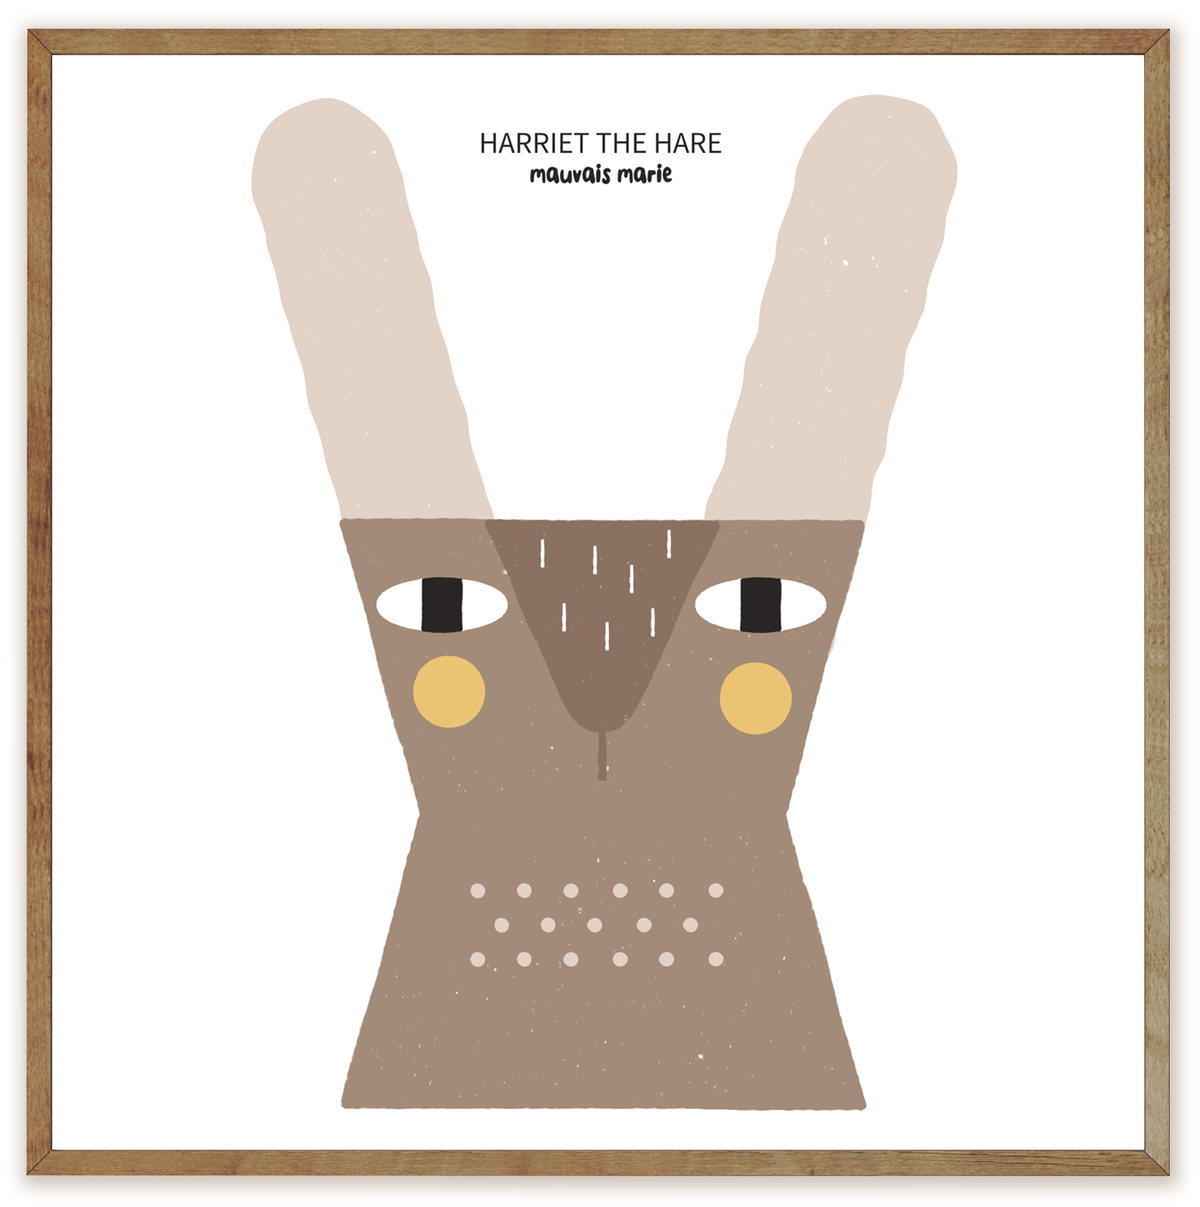 Image of Harriet the hare print